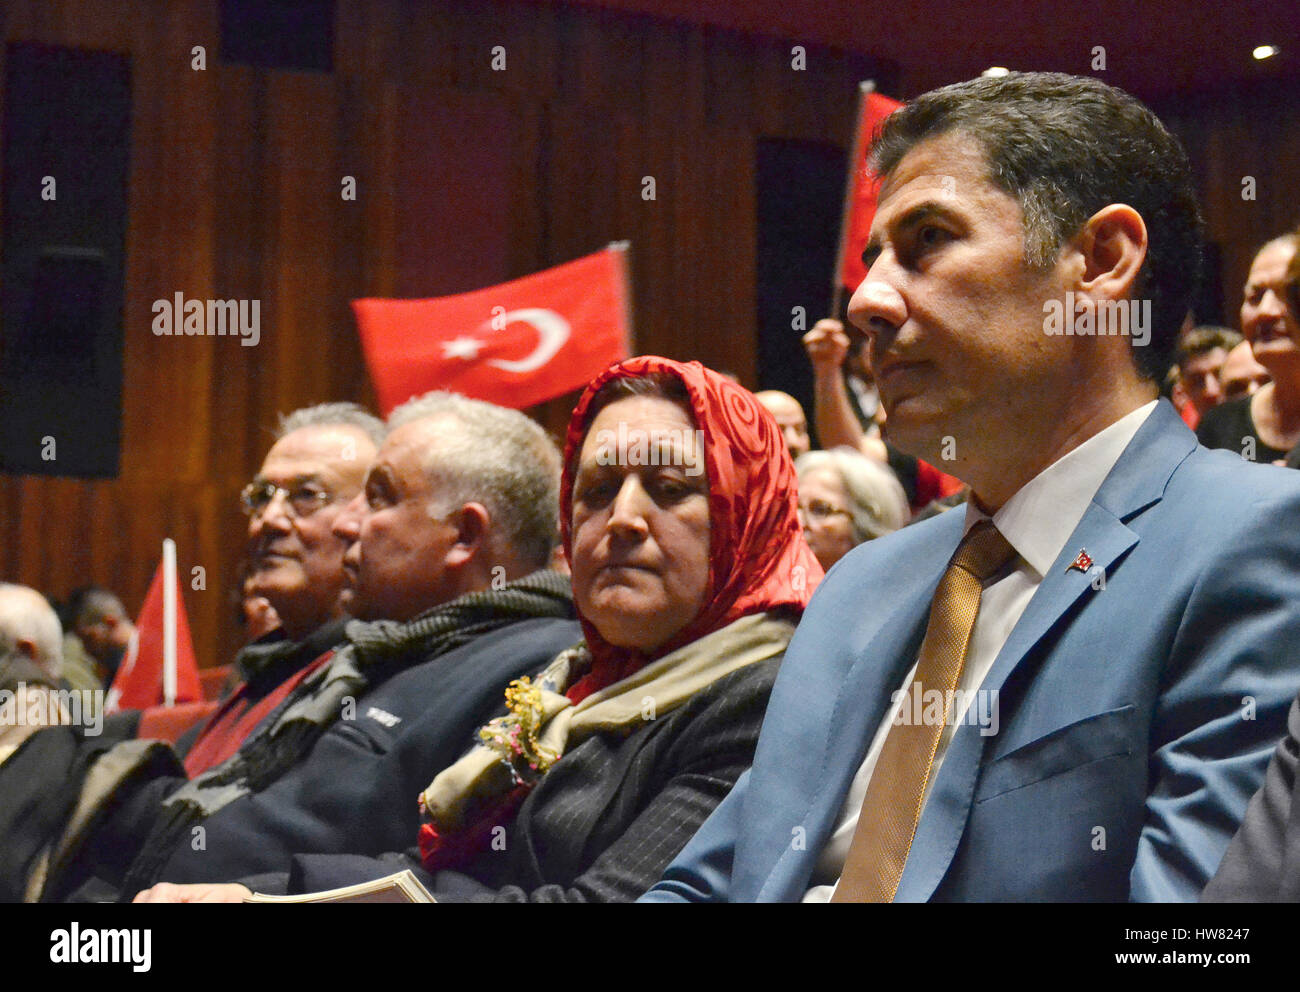 Istanbul, Turkey. 10th Mar, 2017. Sinan Ogan (R) prepares to give a speech to supporters in Istanbul, Turkey, 10 - Stock Image